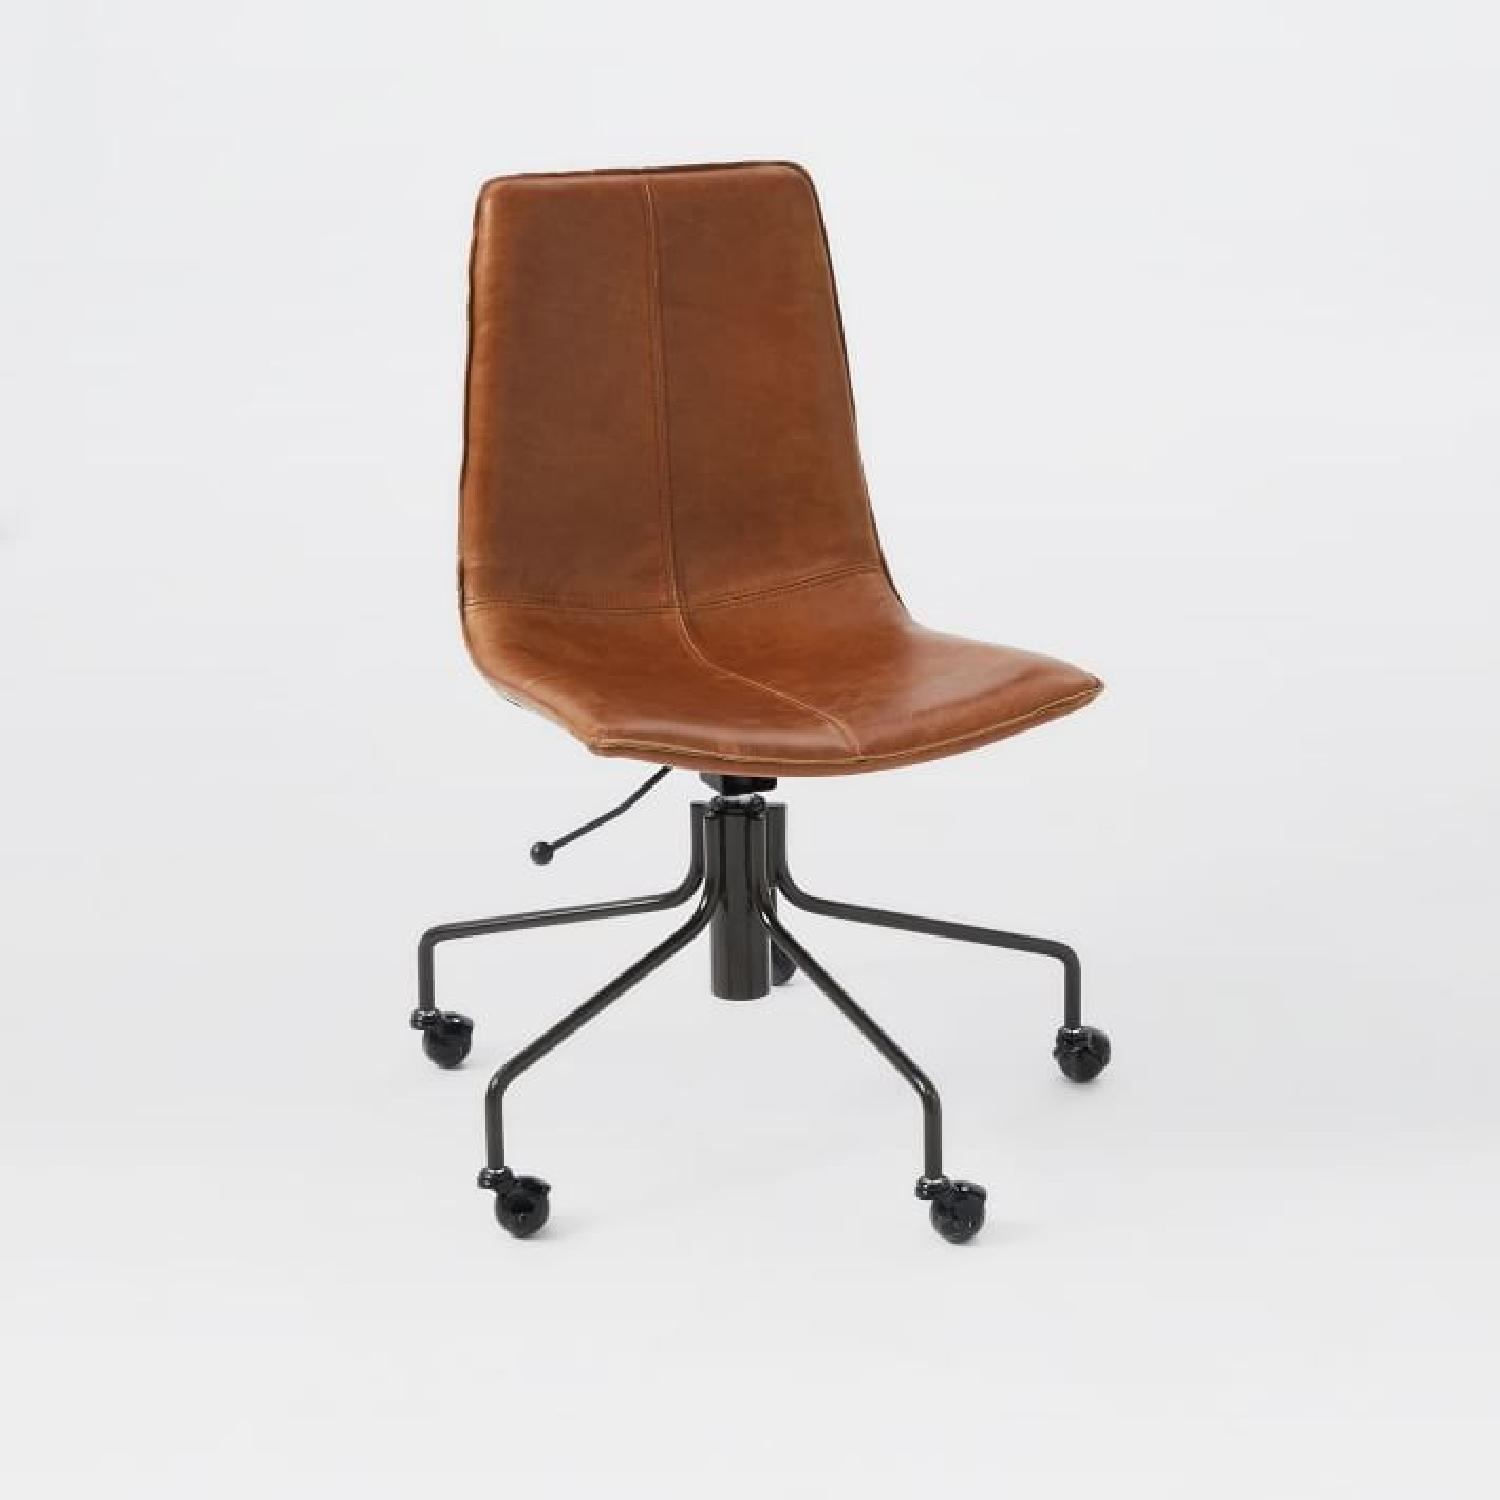 West Elm Slope Leather Swivel Office Chair - image-0